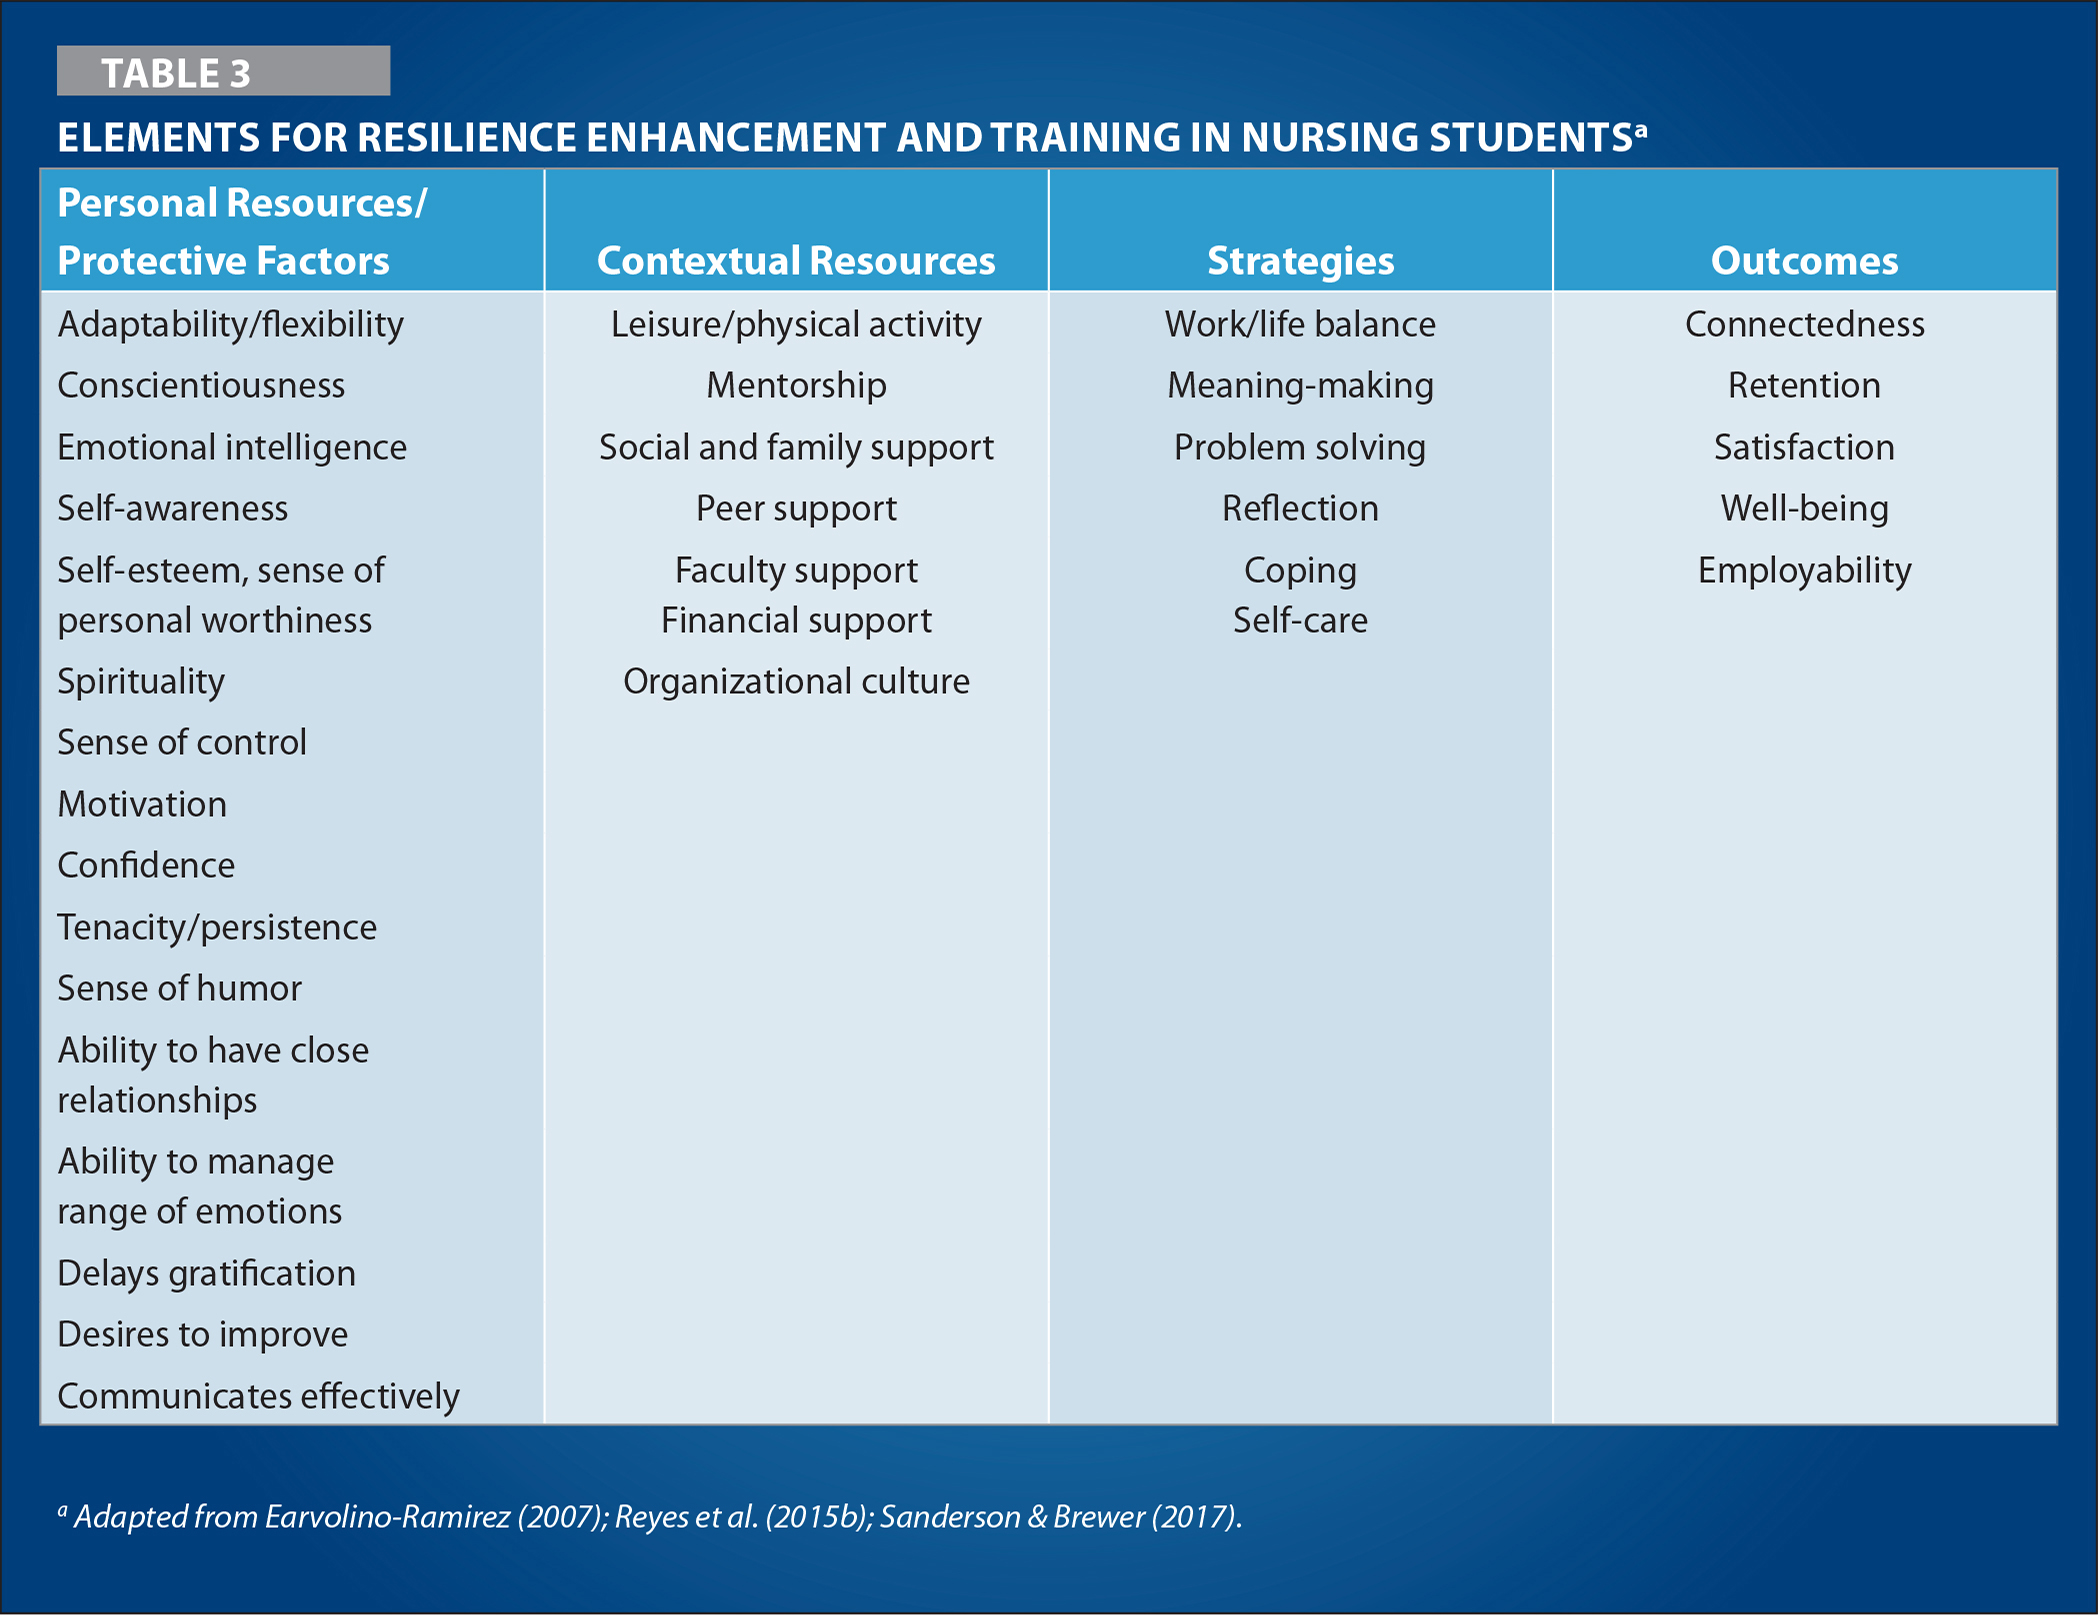 Elements for Resilience Enhancement and Training in Nursing Studentsa